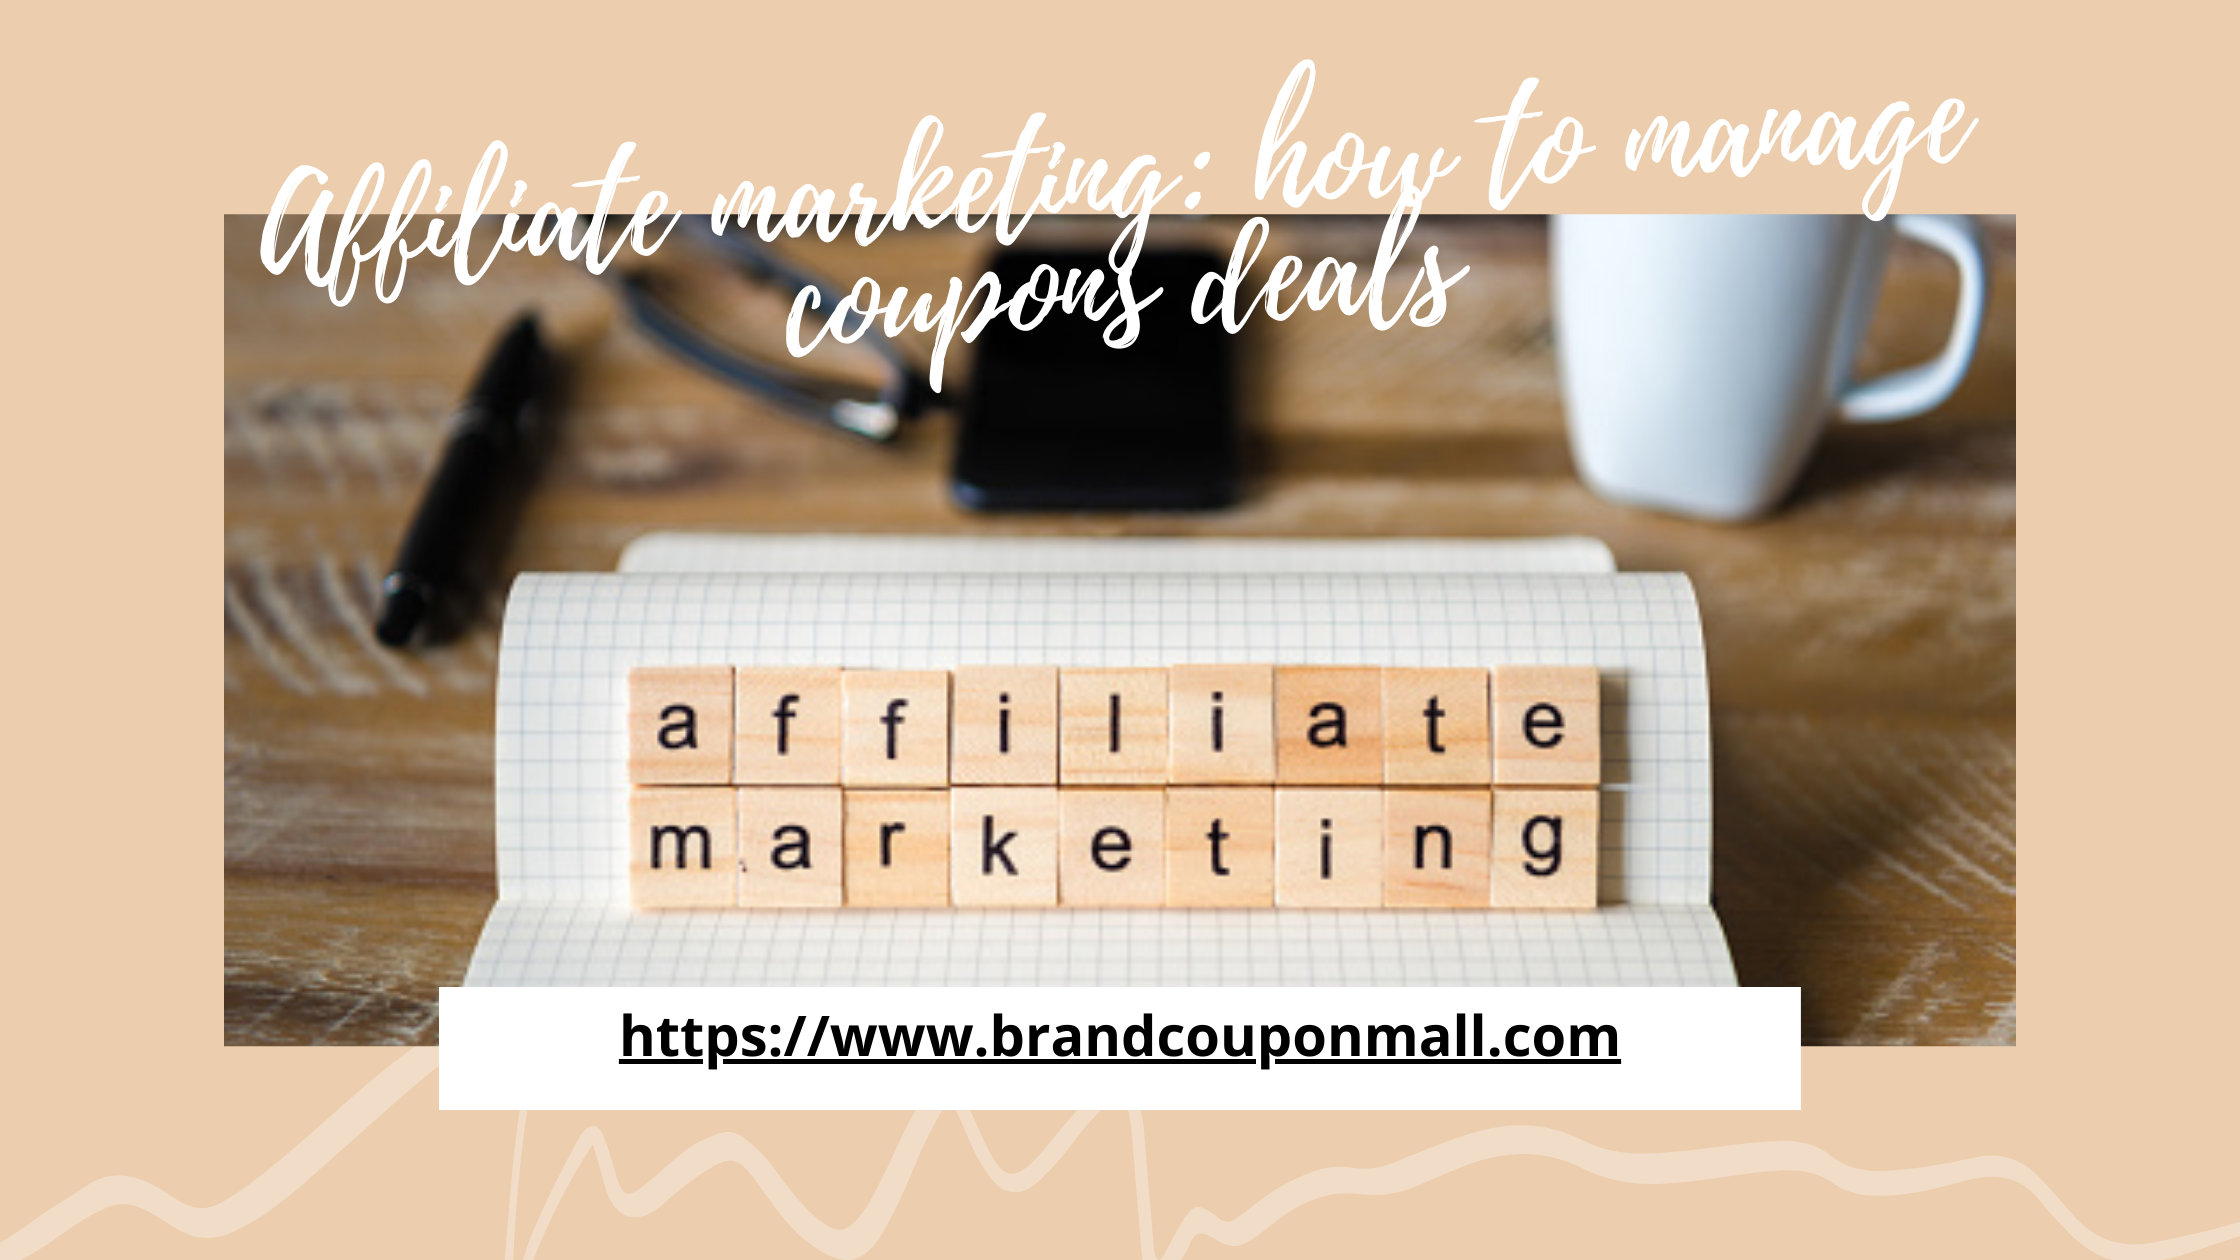 Affiliate marketing: how to manage coupons deals